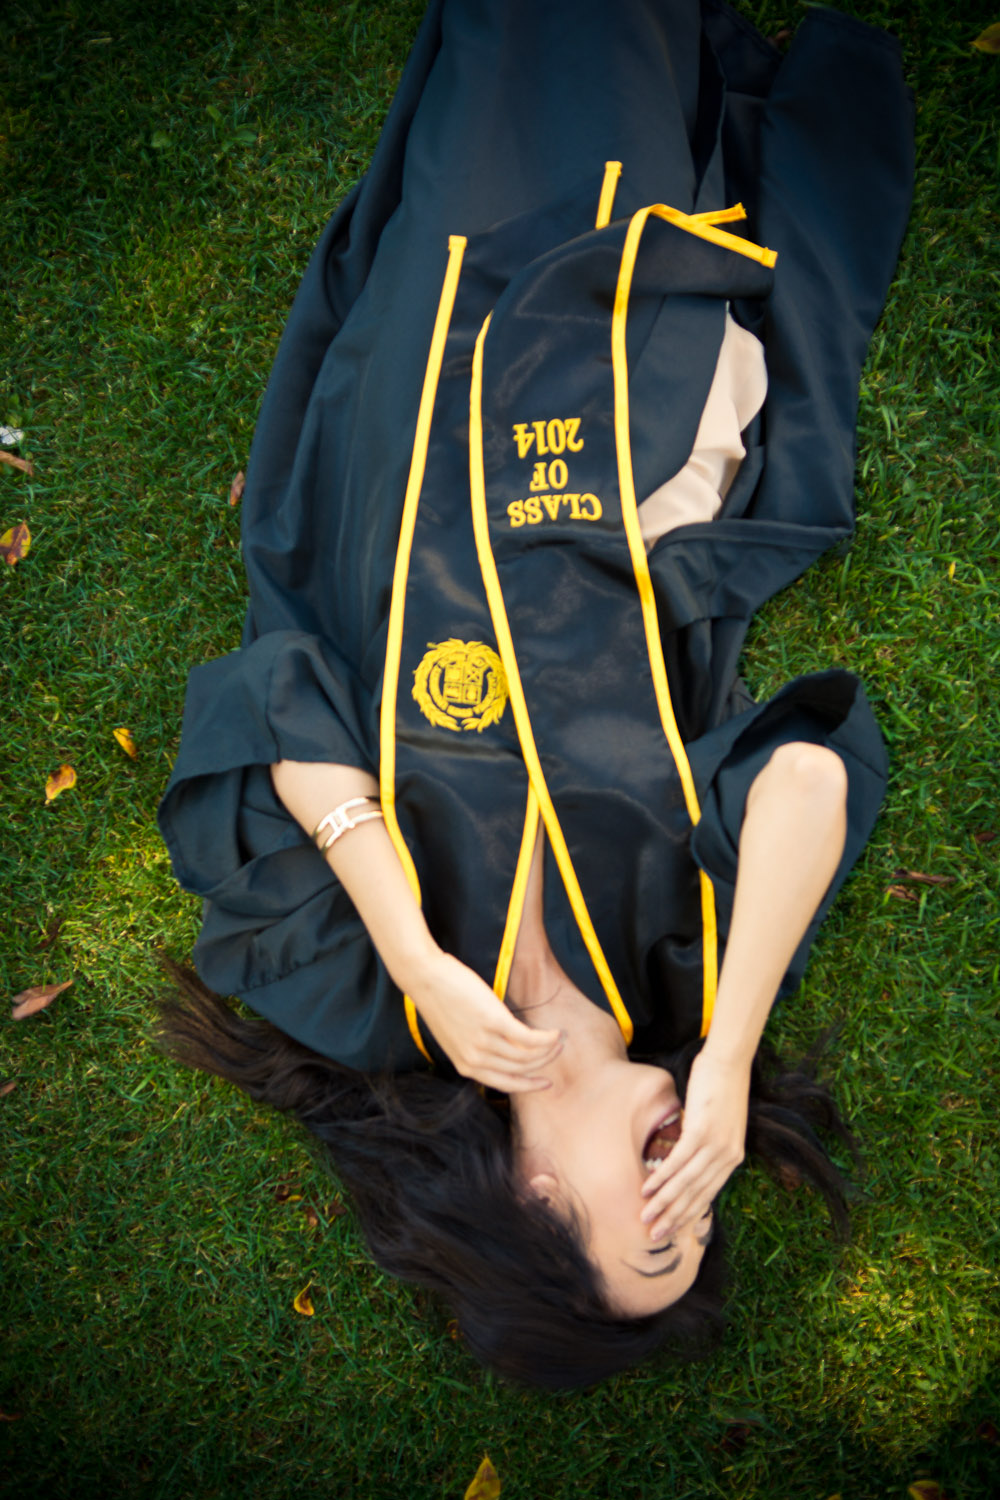 Bryan-Miraflor-Photography-Chelsea-Chow-Grad-Pictures-CSULB-20140430-0033.jpg